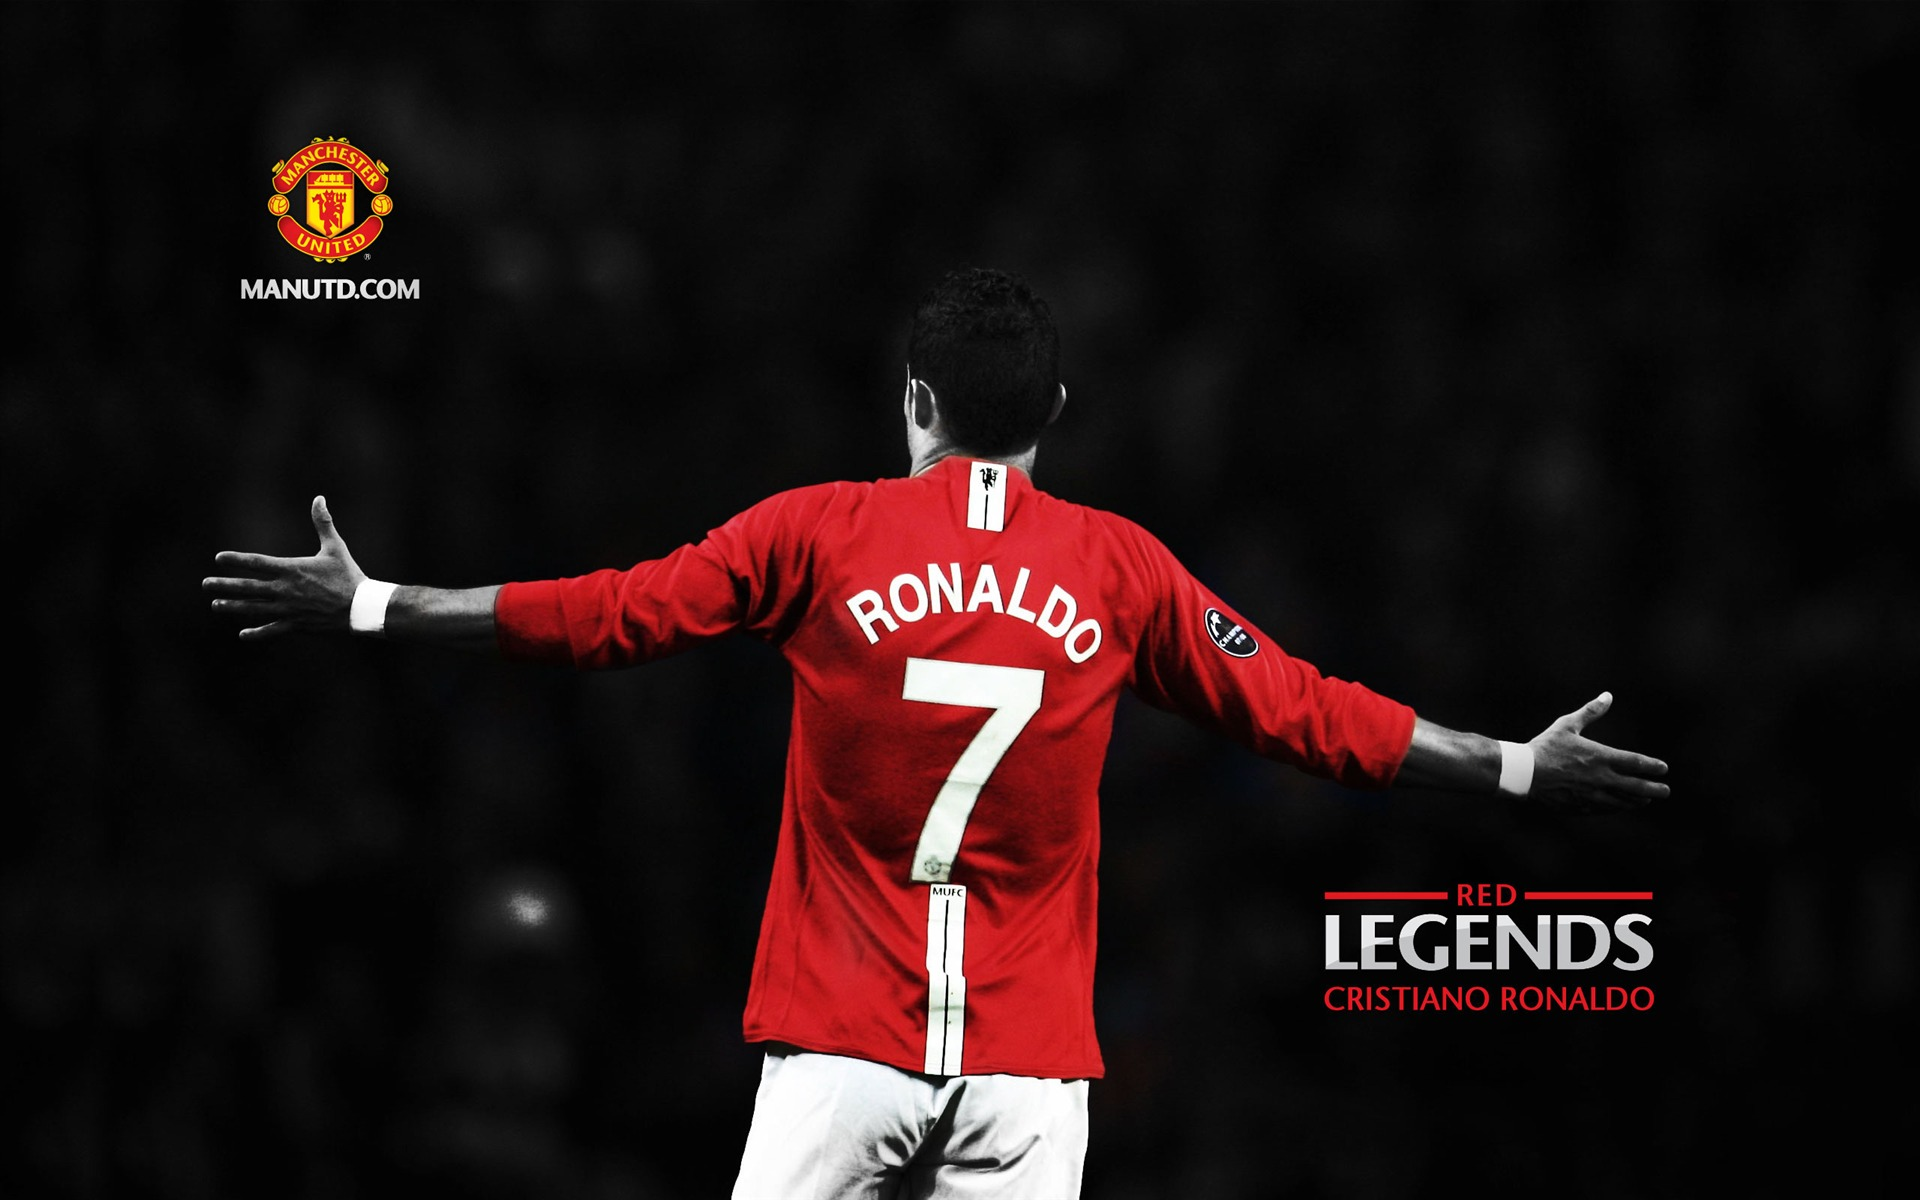 Cristiano Ronaldo-Red Legends-Manchester United wallpaper - 1920x1200 ...